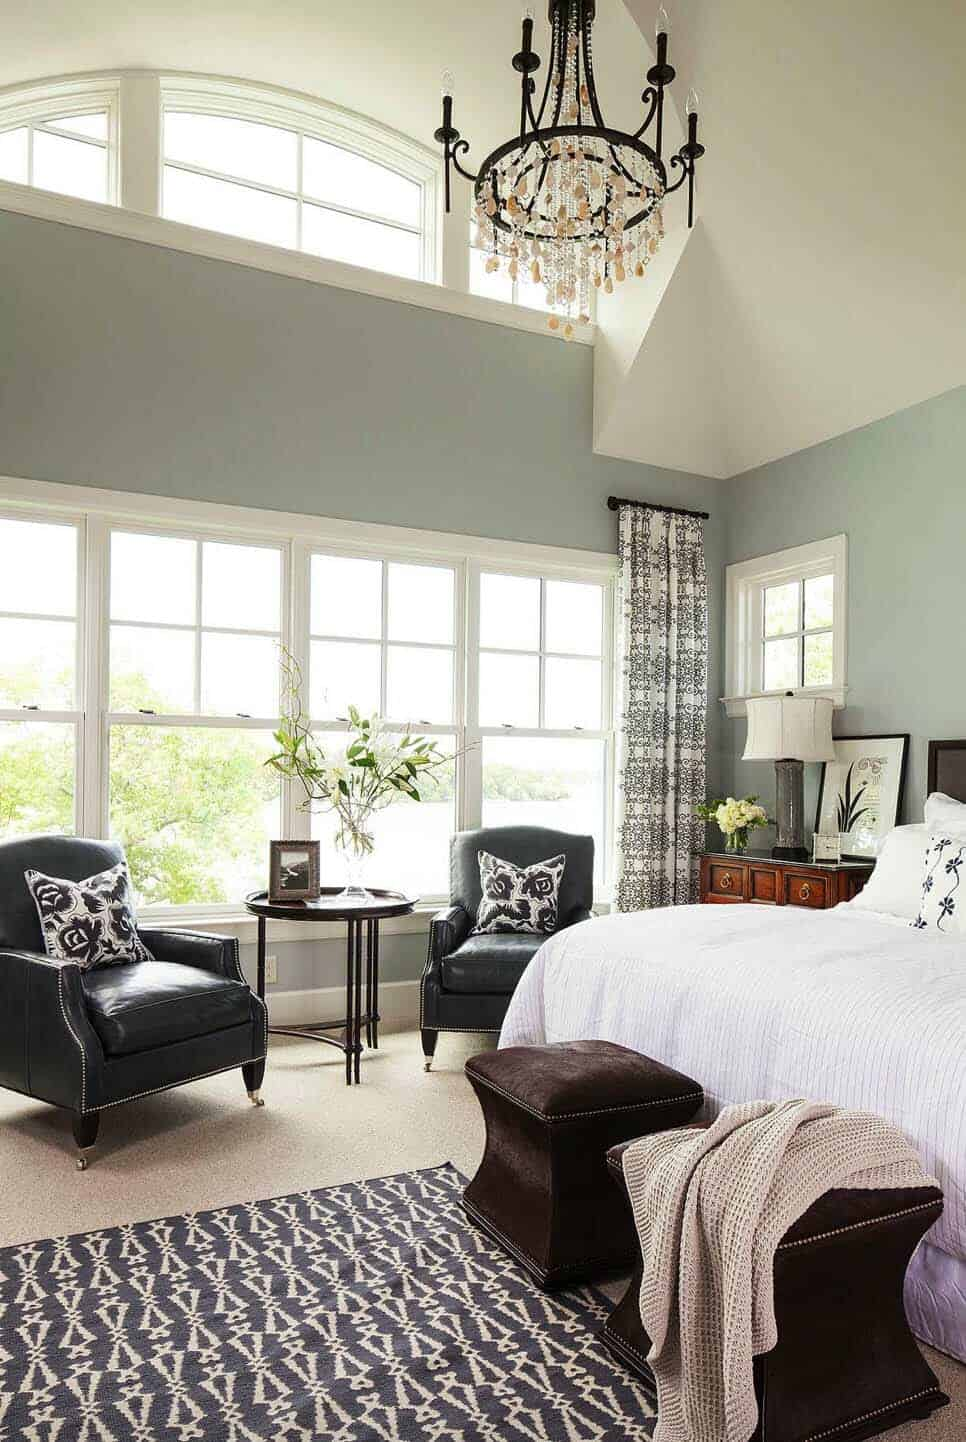 Benjamin Moore Bedroom Colors 25 Absolutely Stunning Master Bedroom Color Scheme Ideas